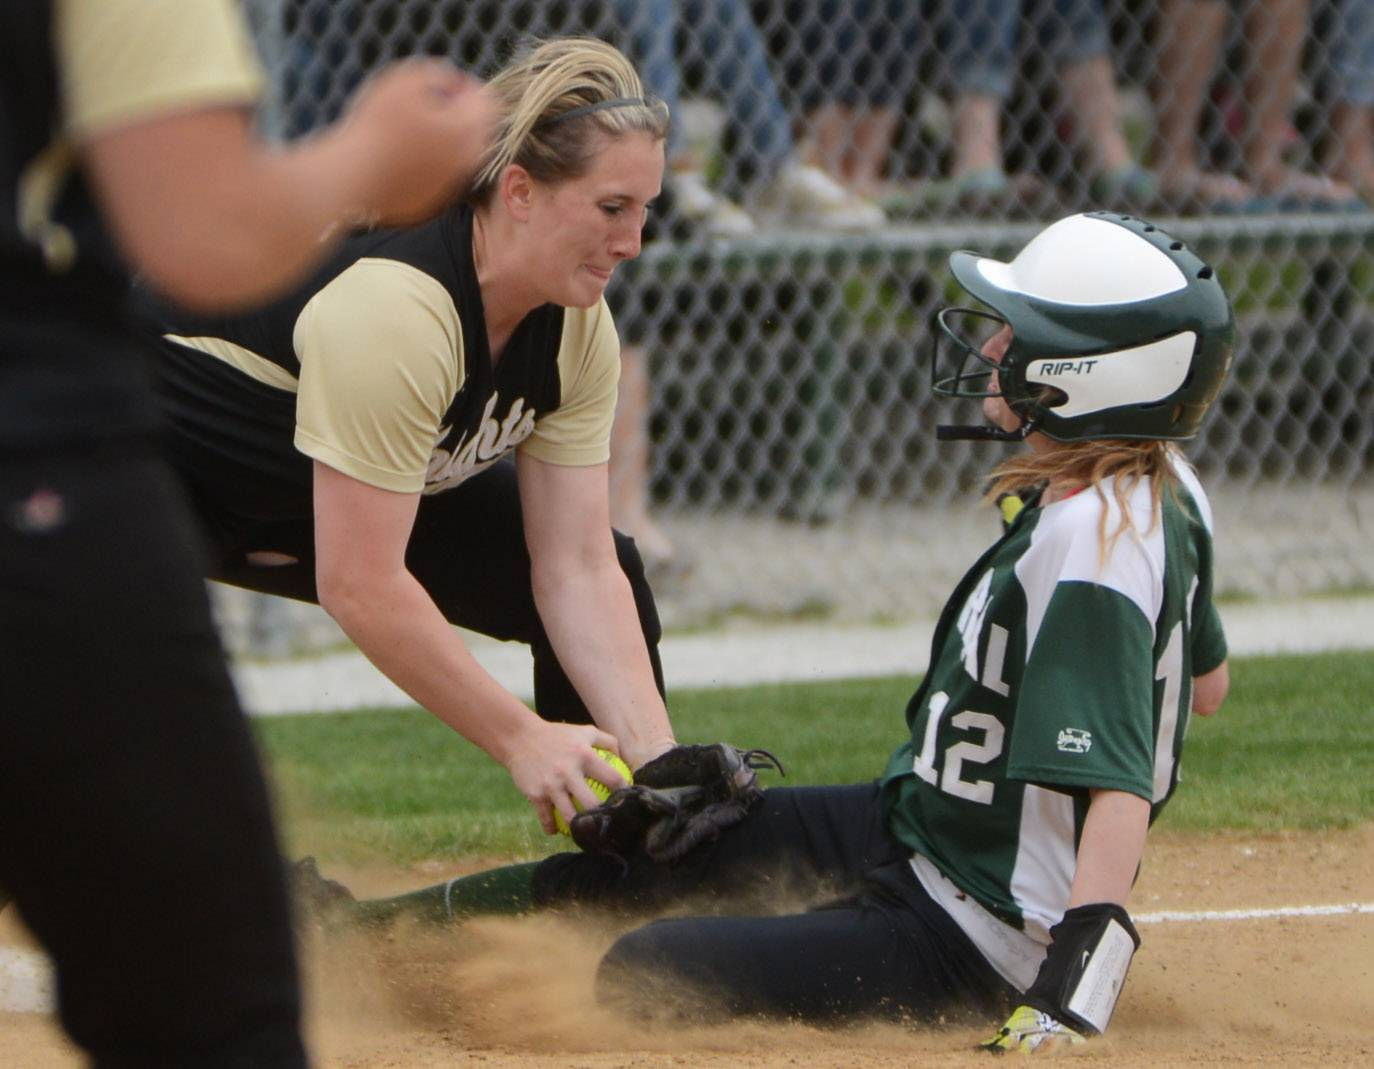 Grayslake North's Nikki Livengood, left, applies the tag to get Grayslake Central's Shelby White out at third during Monday's game.